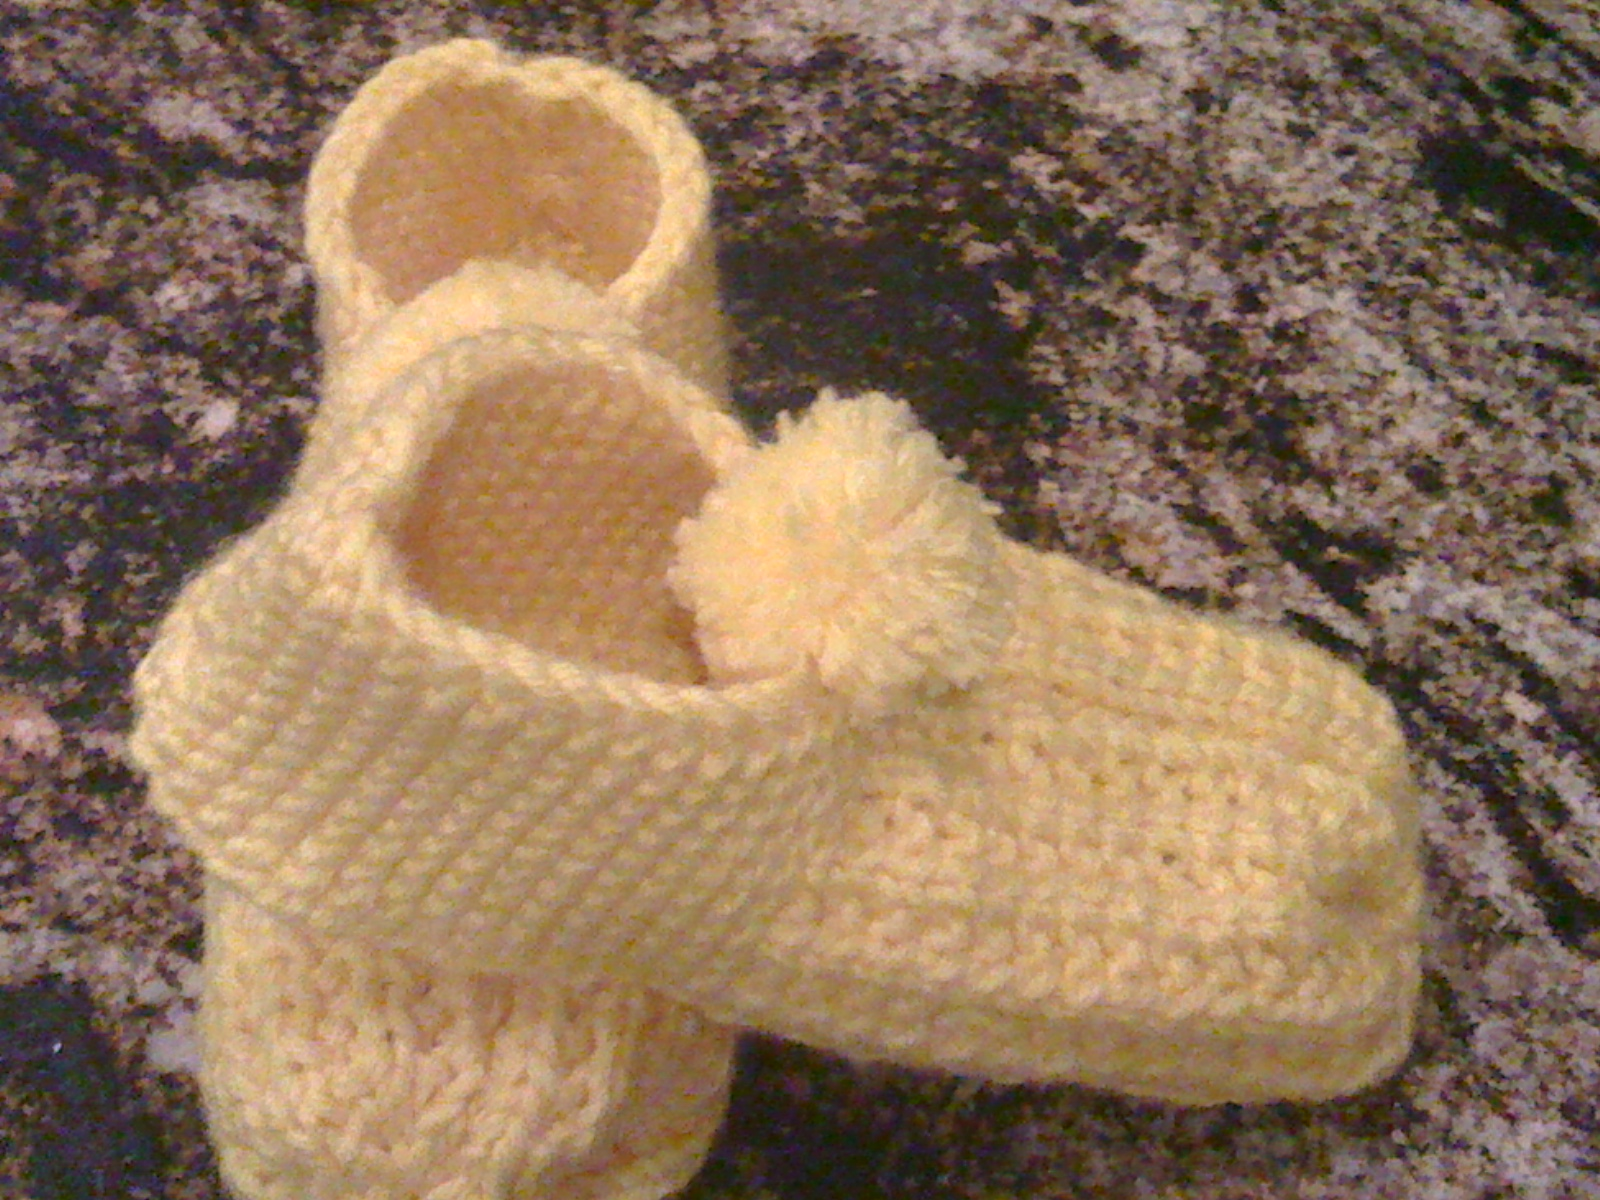 Patterns For Knitting Slippers : Mosier Farms: Rounded Heel Knitted Slipper Pattern